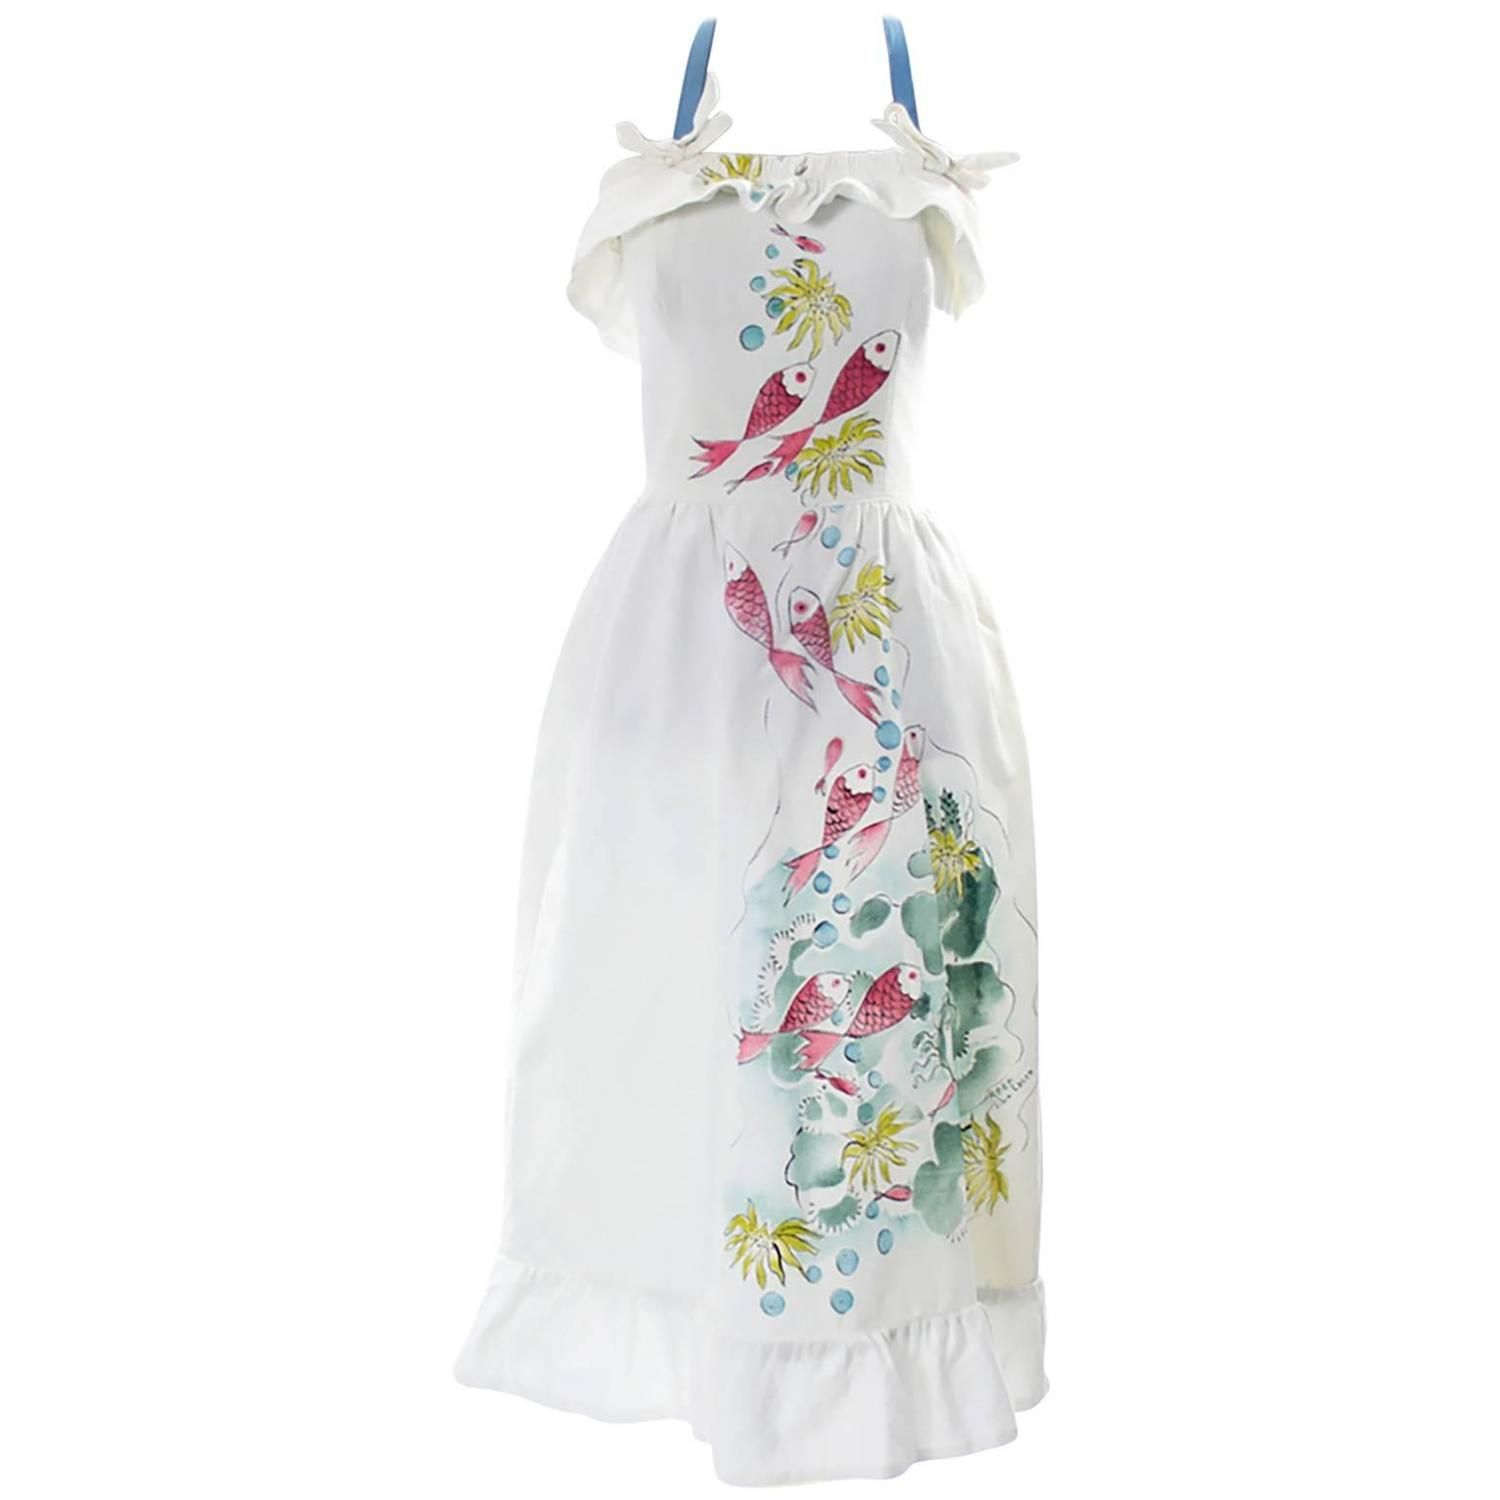 Rare Vintage Tina Leser Hand Painted Dress 1940s Fish Reef Halter Signed | From a collection of rare vintage day dresses at https://www.1stdibs.com/fashion/clothing/day-dresses/